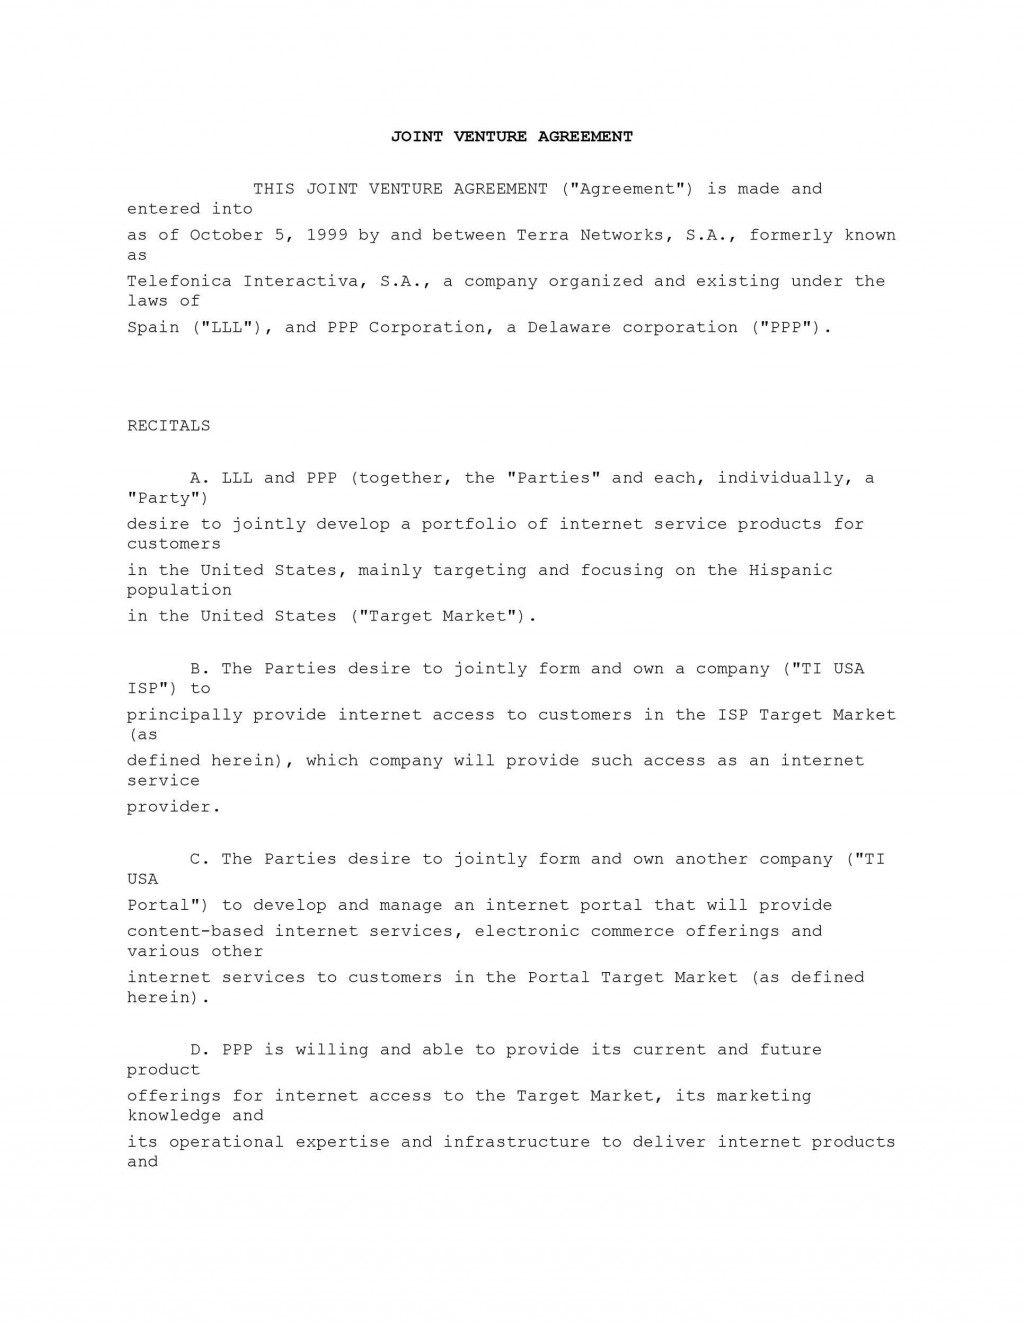 007 Unique Joint Venture Agreement Template Free South Africa High Resolution  DownloadLarge